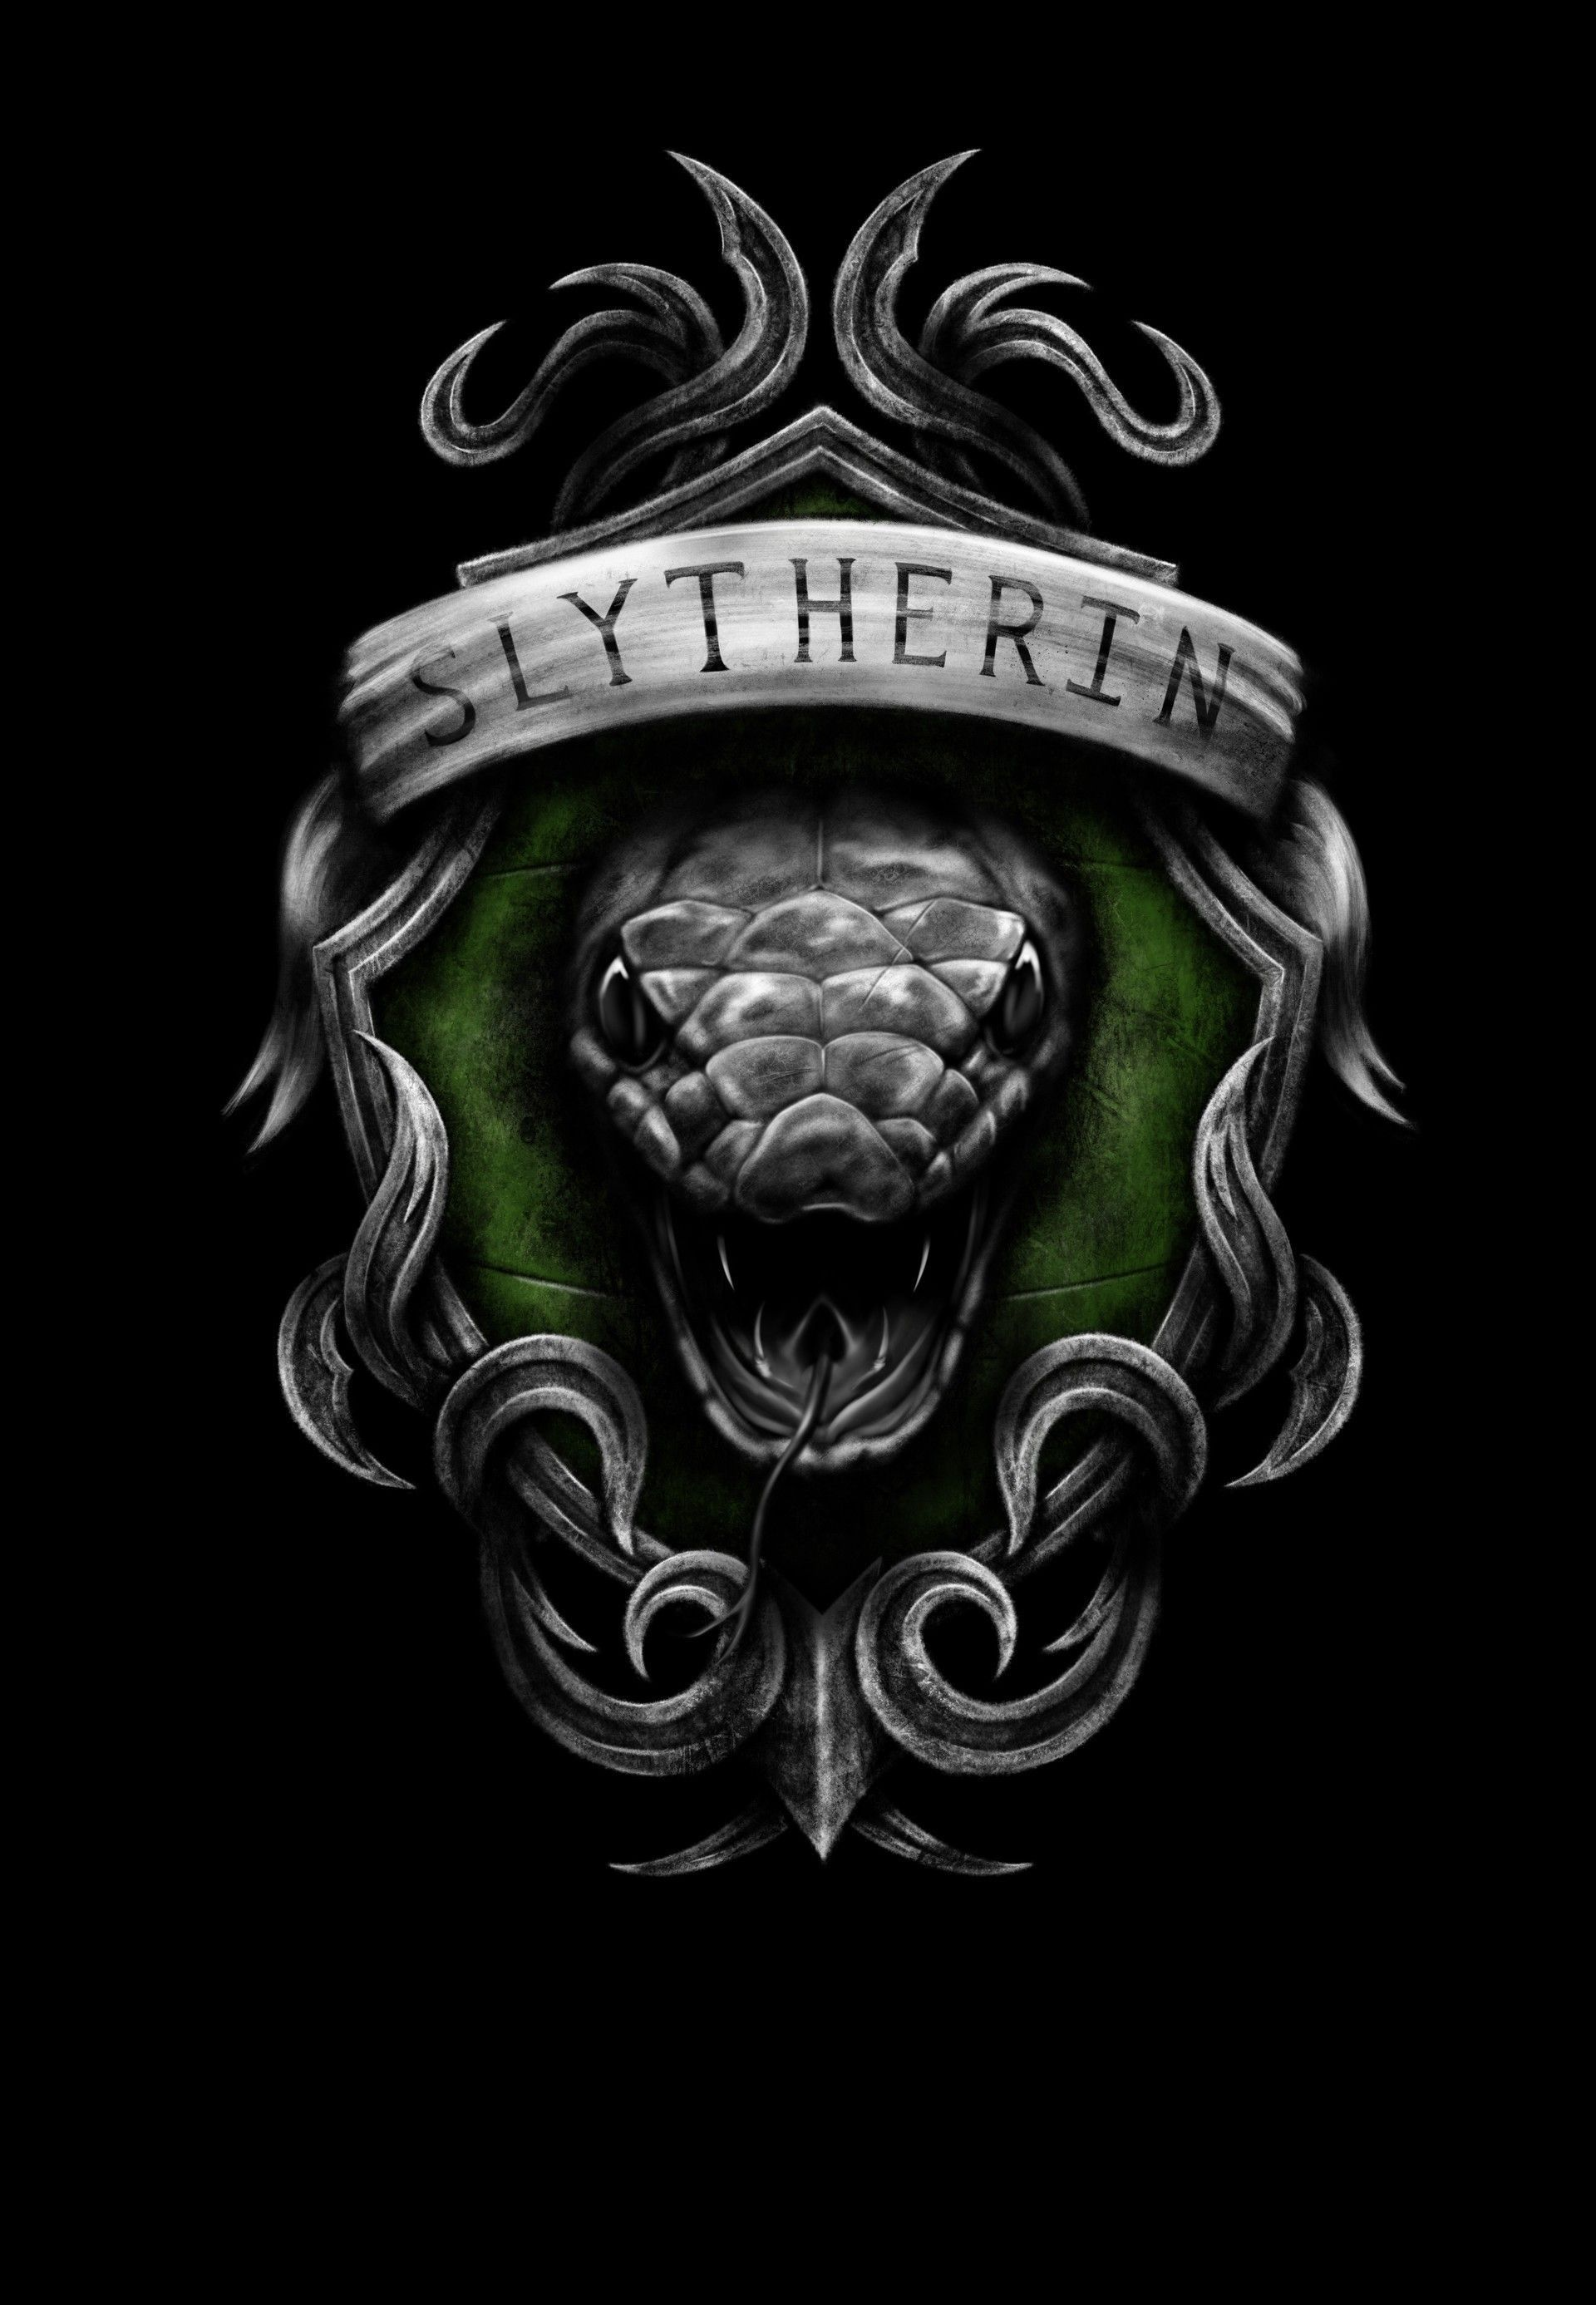 80 Slytherin Iphone Wallpapers On Wallpaperplay Harry Potter Wallpaper Harry Potter Art Slytherin Harry Potter